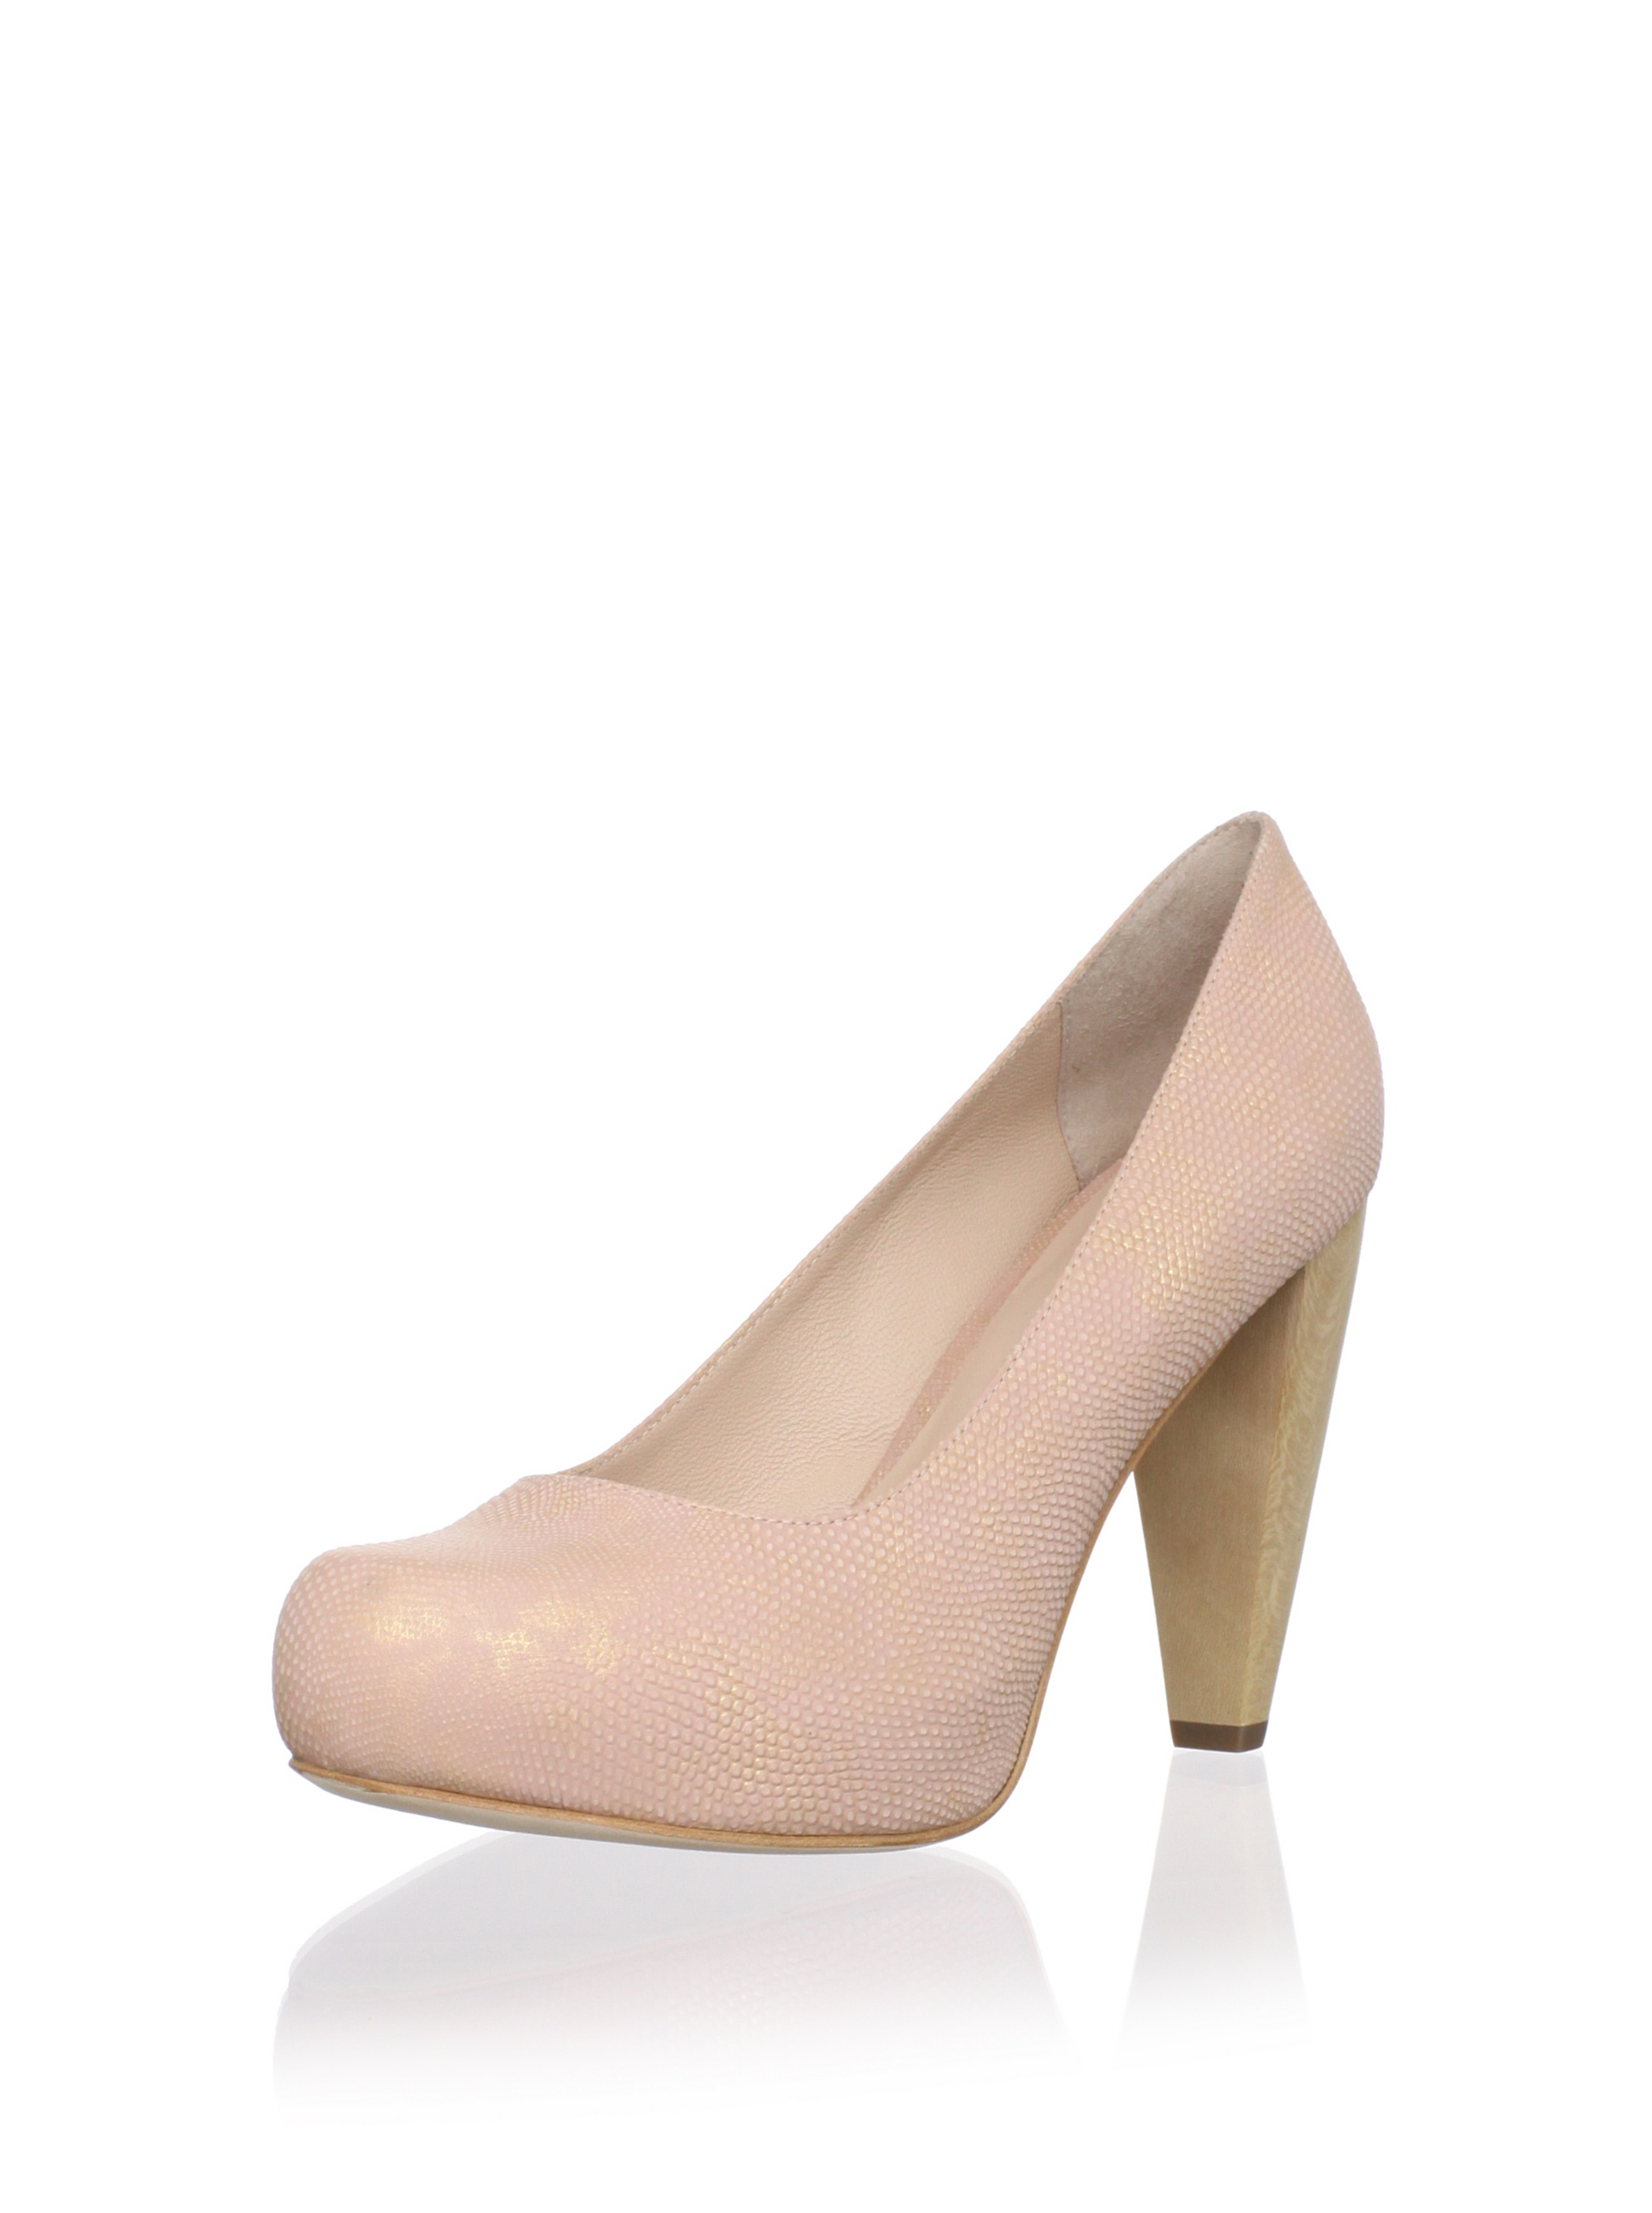 Loeffler Randall Women's Esther Hidden Platform Pump (Rose Gold)